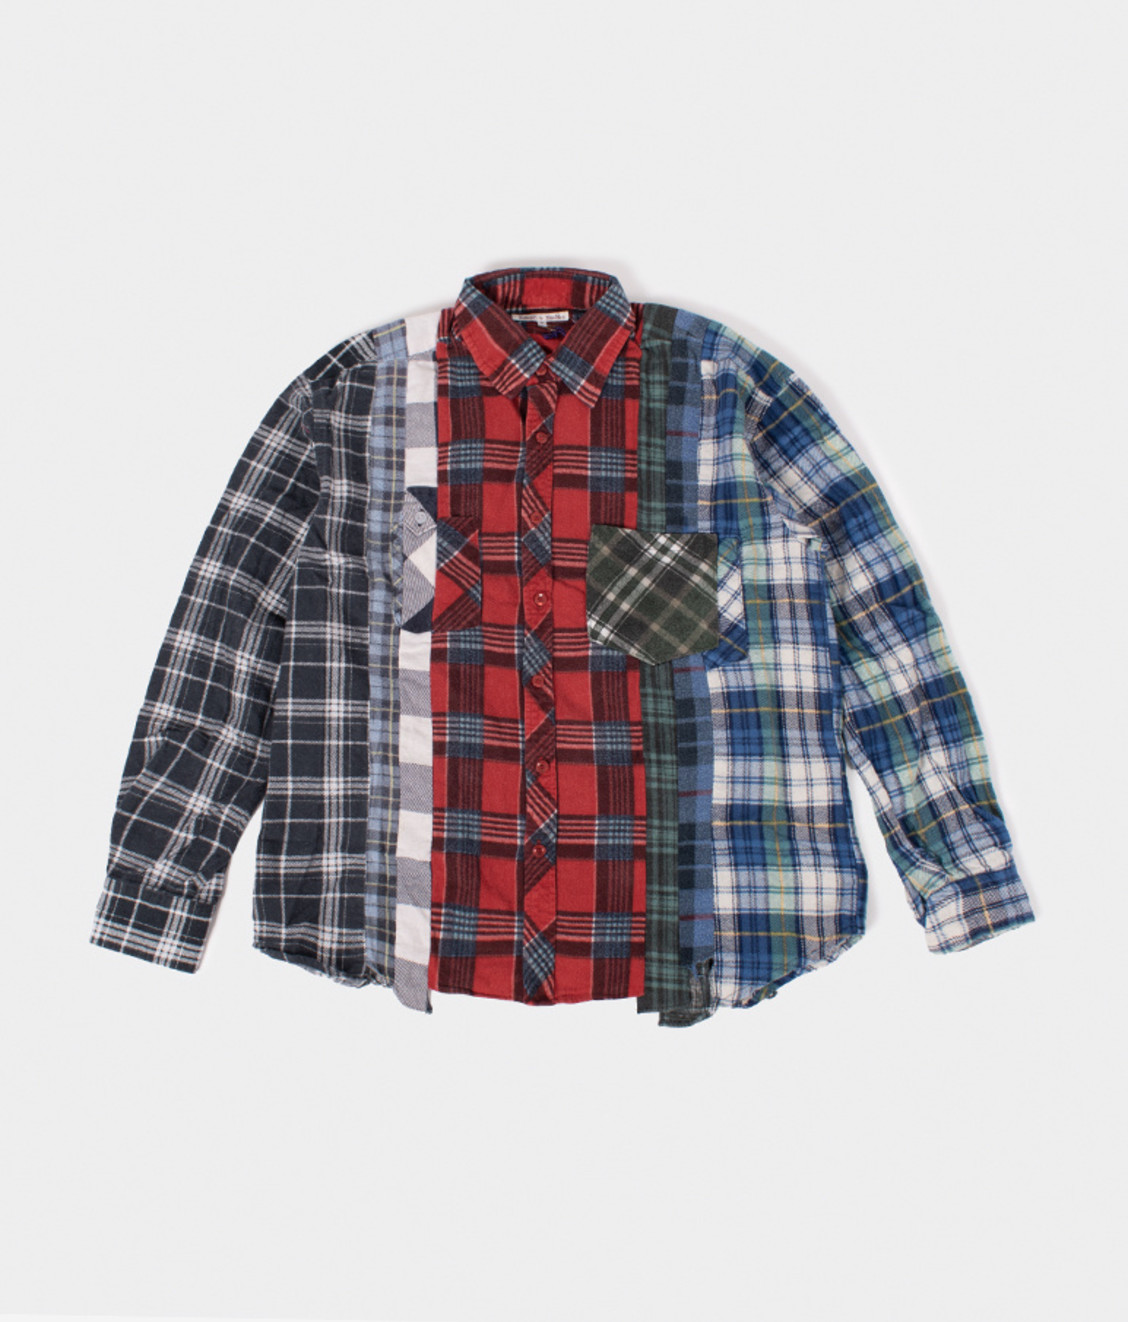 Needles Rebuild by Needles Flannel Shirt 7 Cuts Shirt